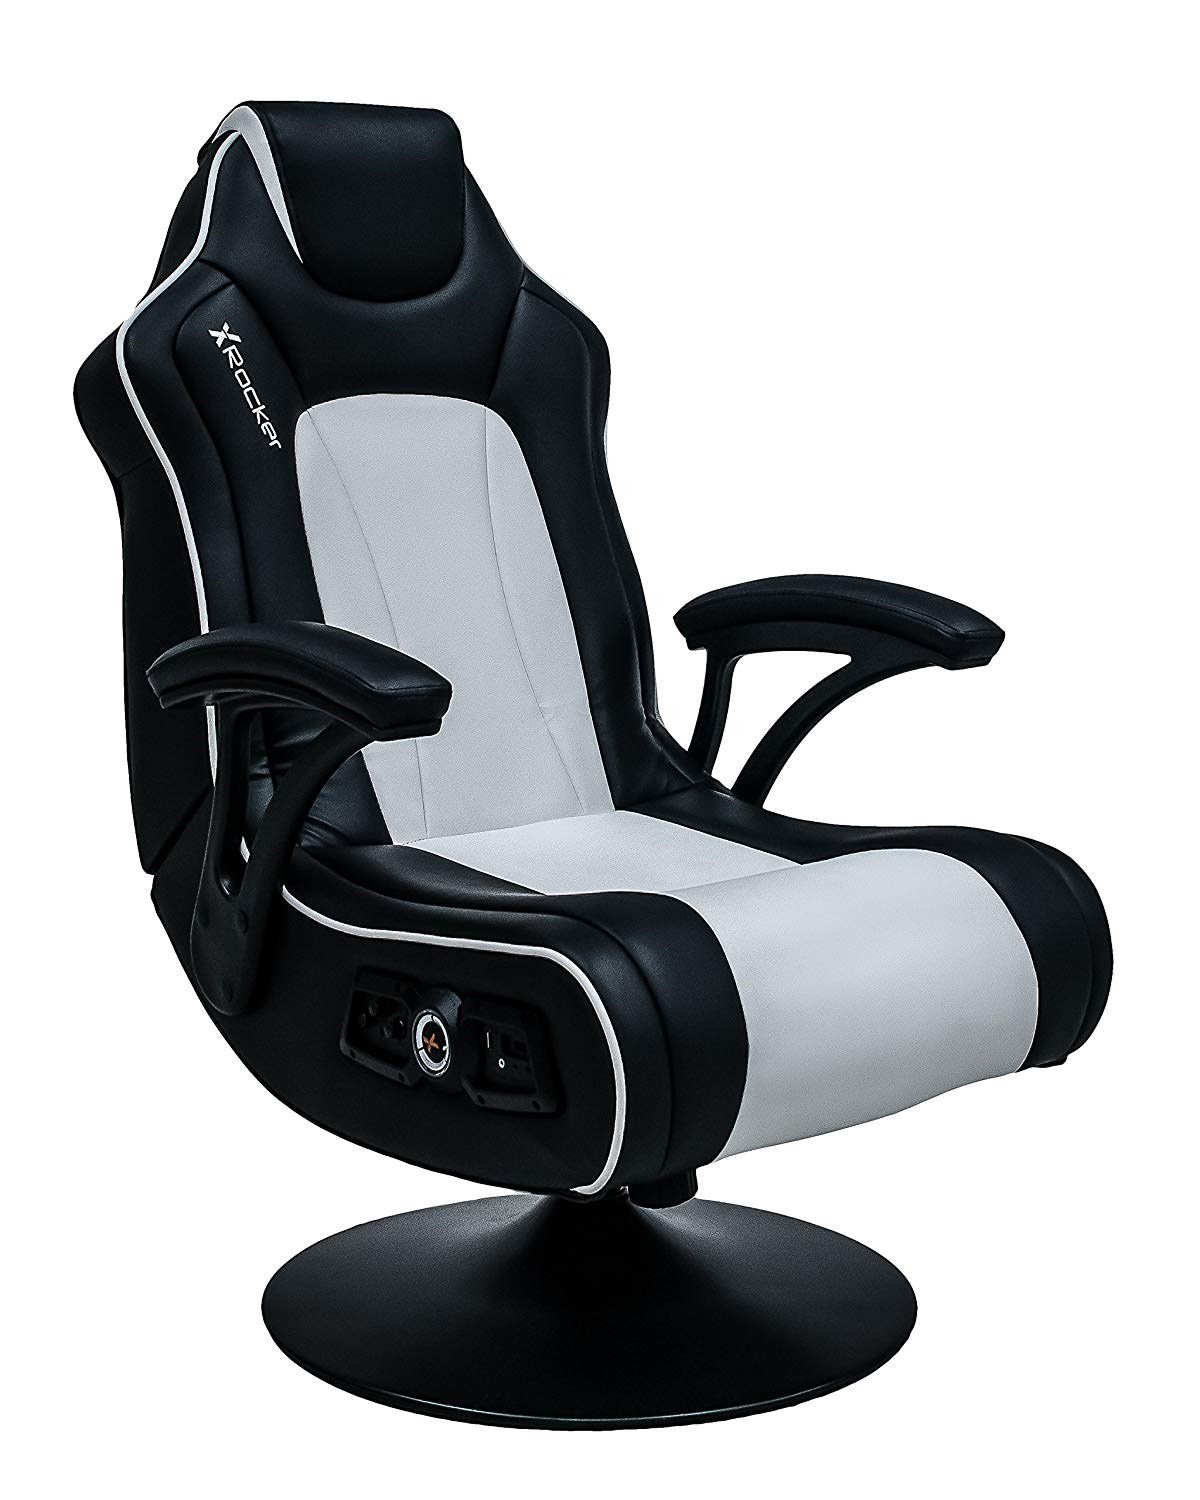 Brilliant X Rocker Torque 2 1 Gaming Chair With Bluetooth Speakers Gmtry Best Dining Table And Chair Ideas Images Gmtryco